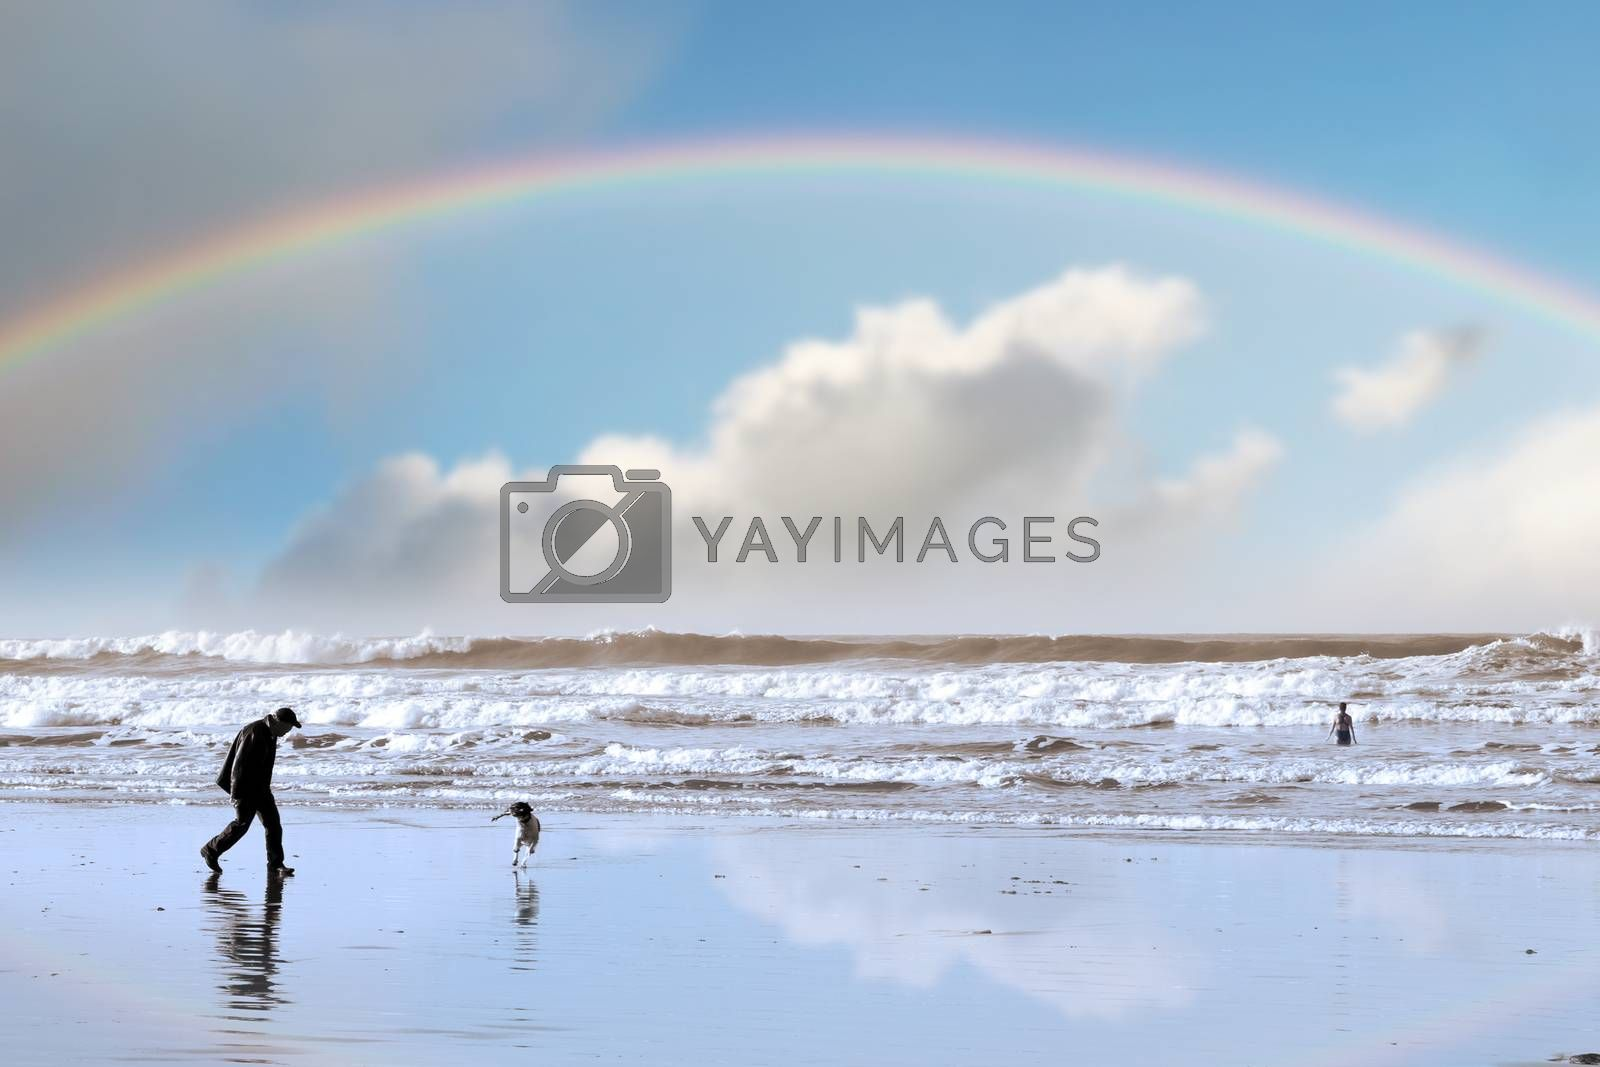 one man and his dog on Ballybunion beach county Kerry Ireland with a rainbow